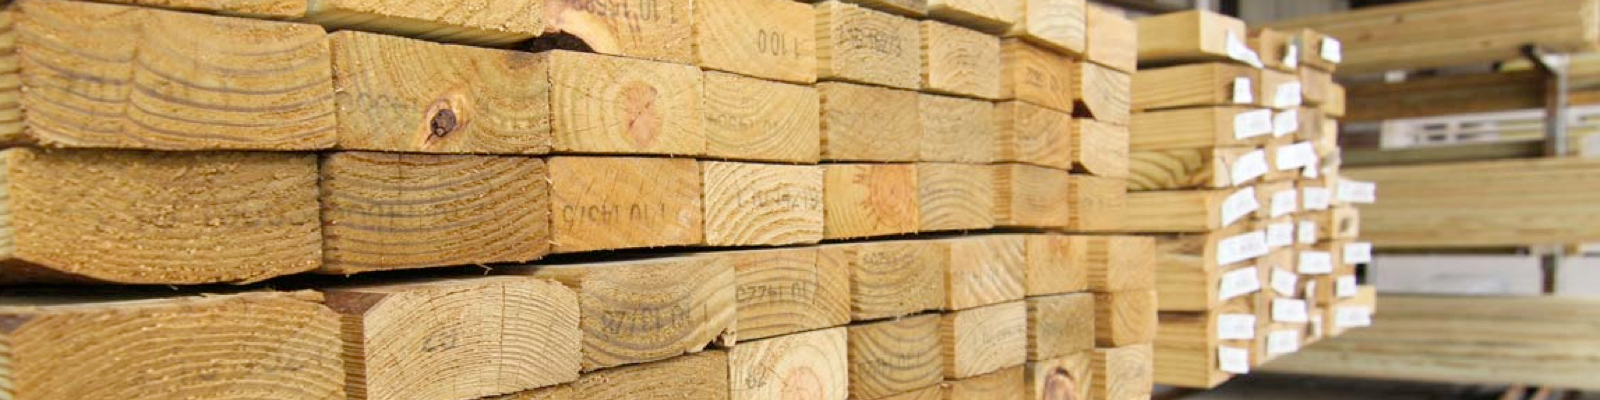 image of 2x4 lumber